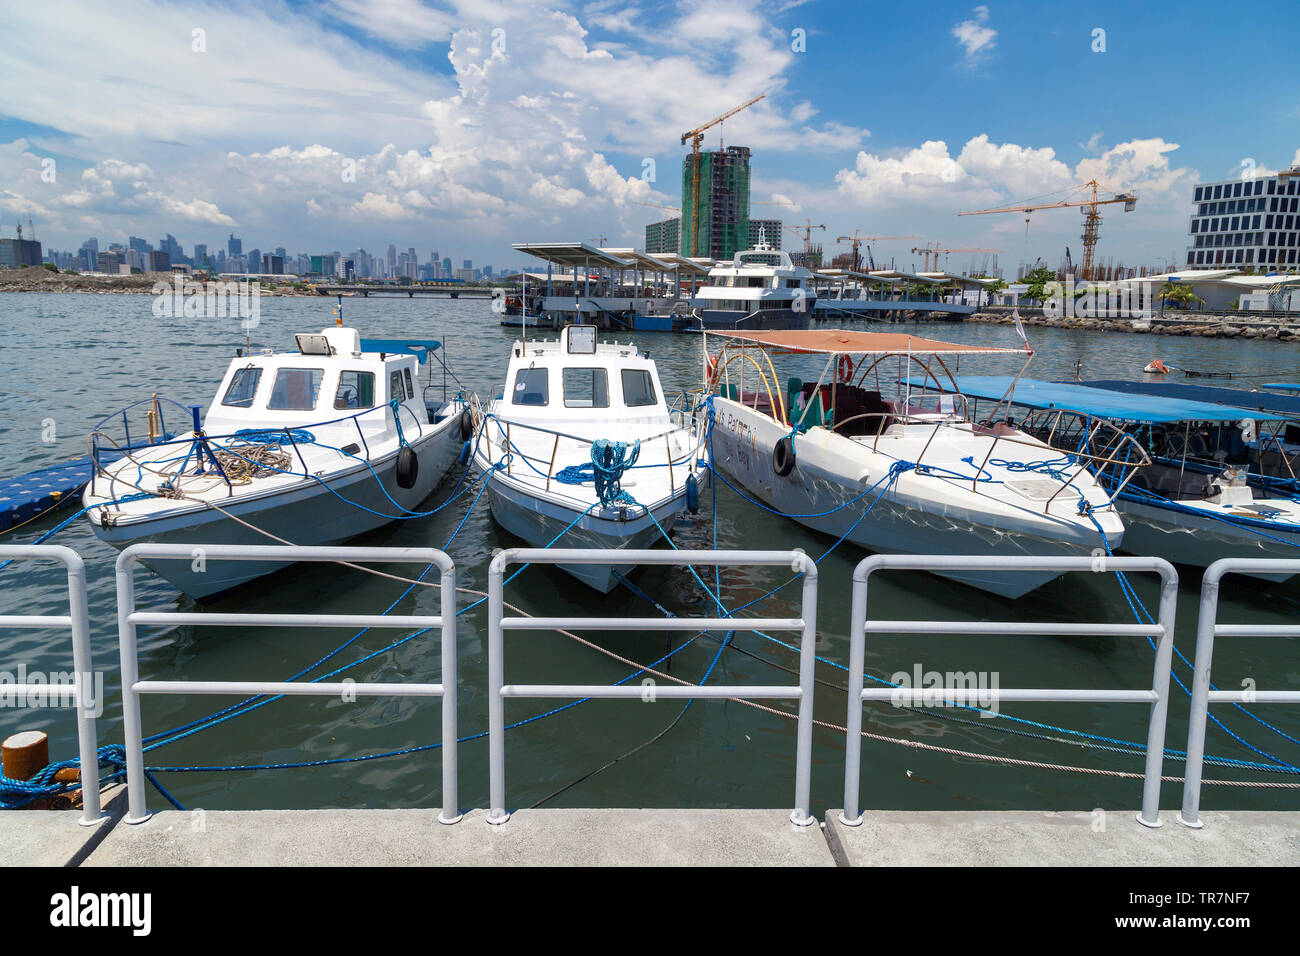 Anchored boats in Manila bay pier port, Pasay, Philippines - Stock Image